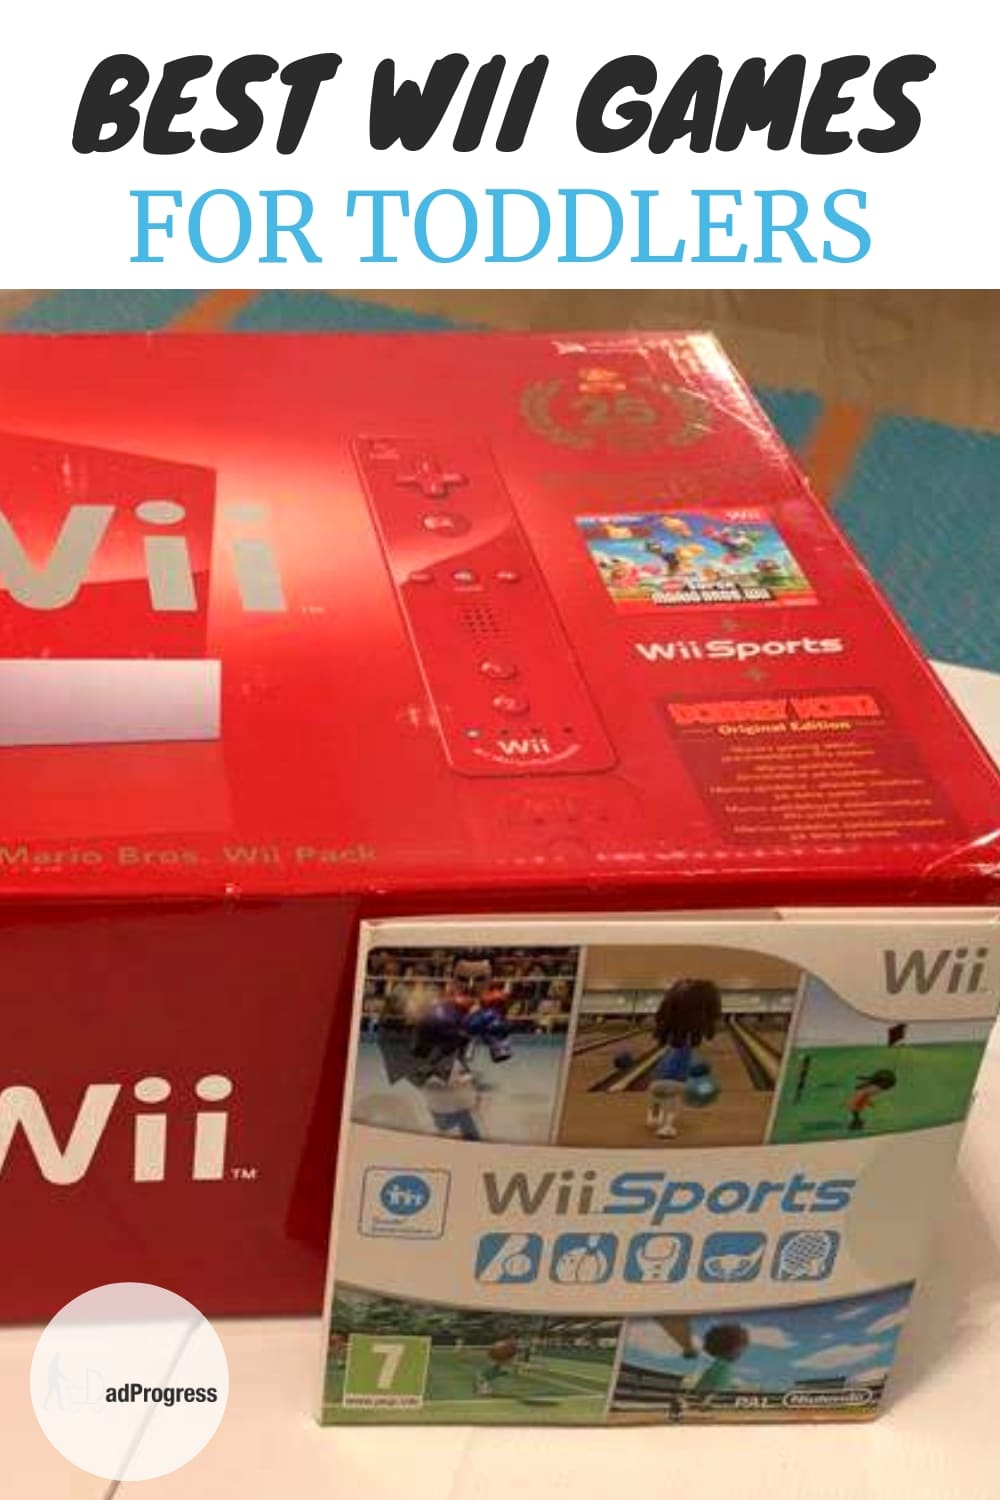 Nintendo Wii console has many best video games for toddlers and preschoolers to enjoy. Click to learn more on the subject